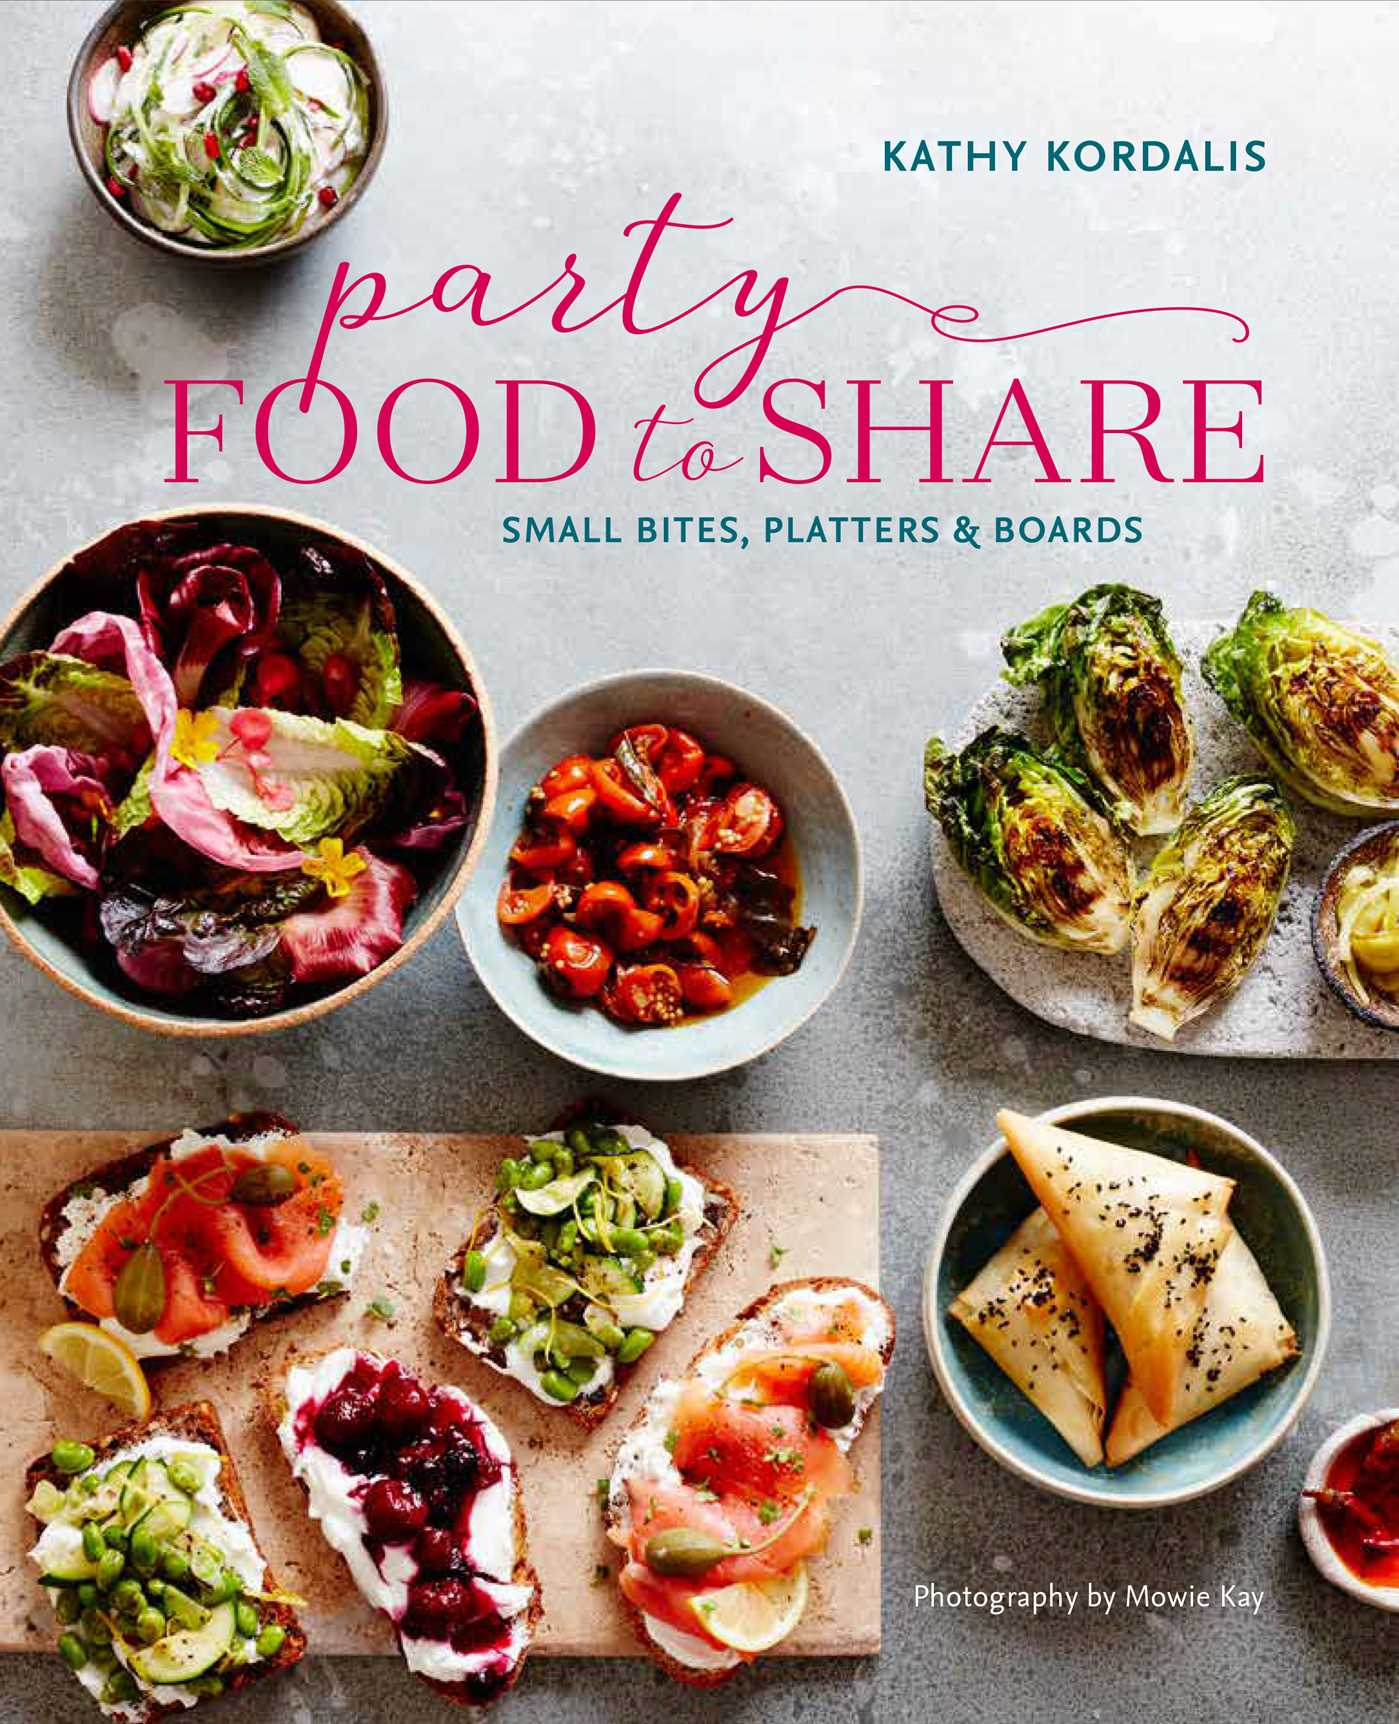 Party perfect food to share 9781849758628 hr